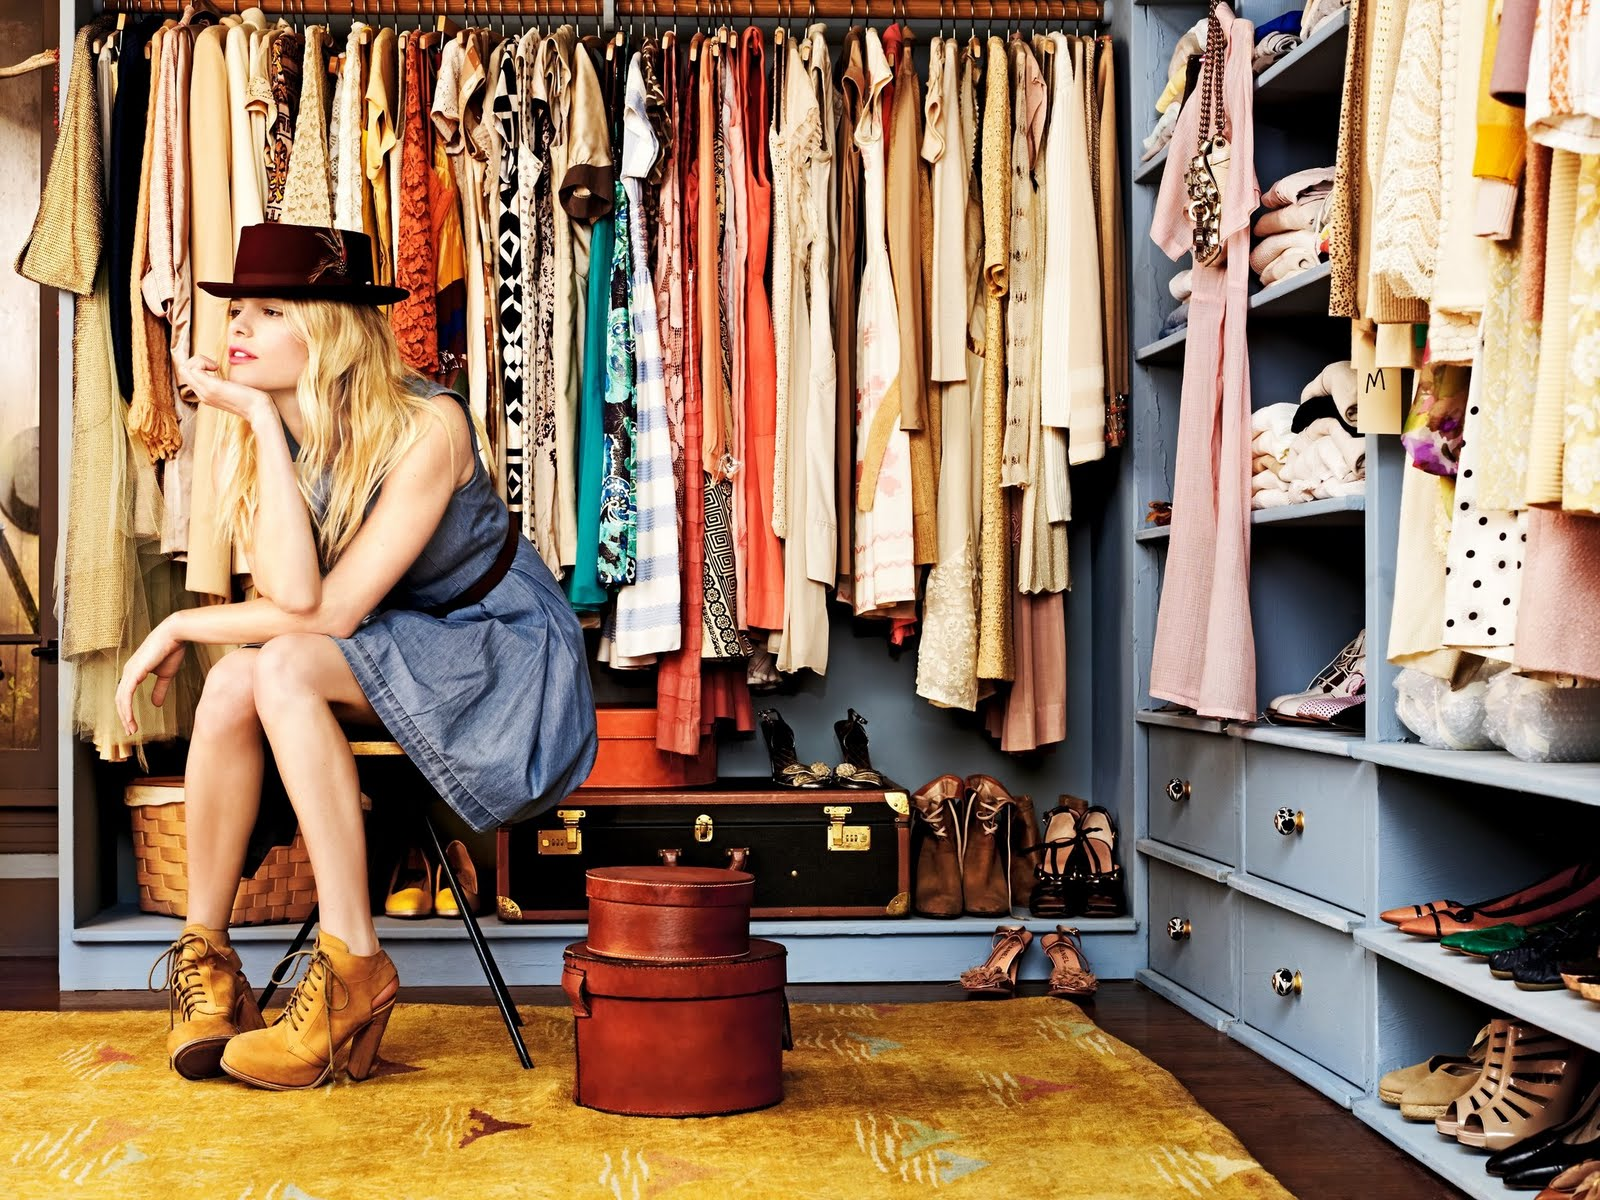 How To Clean Out Your Closet - OOTD Magazine